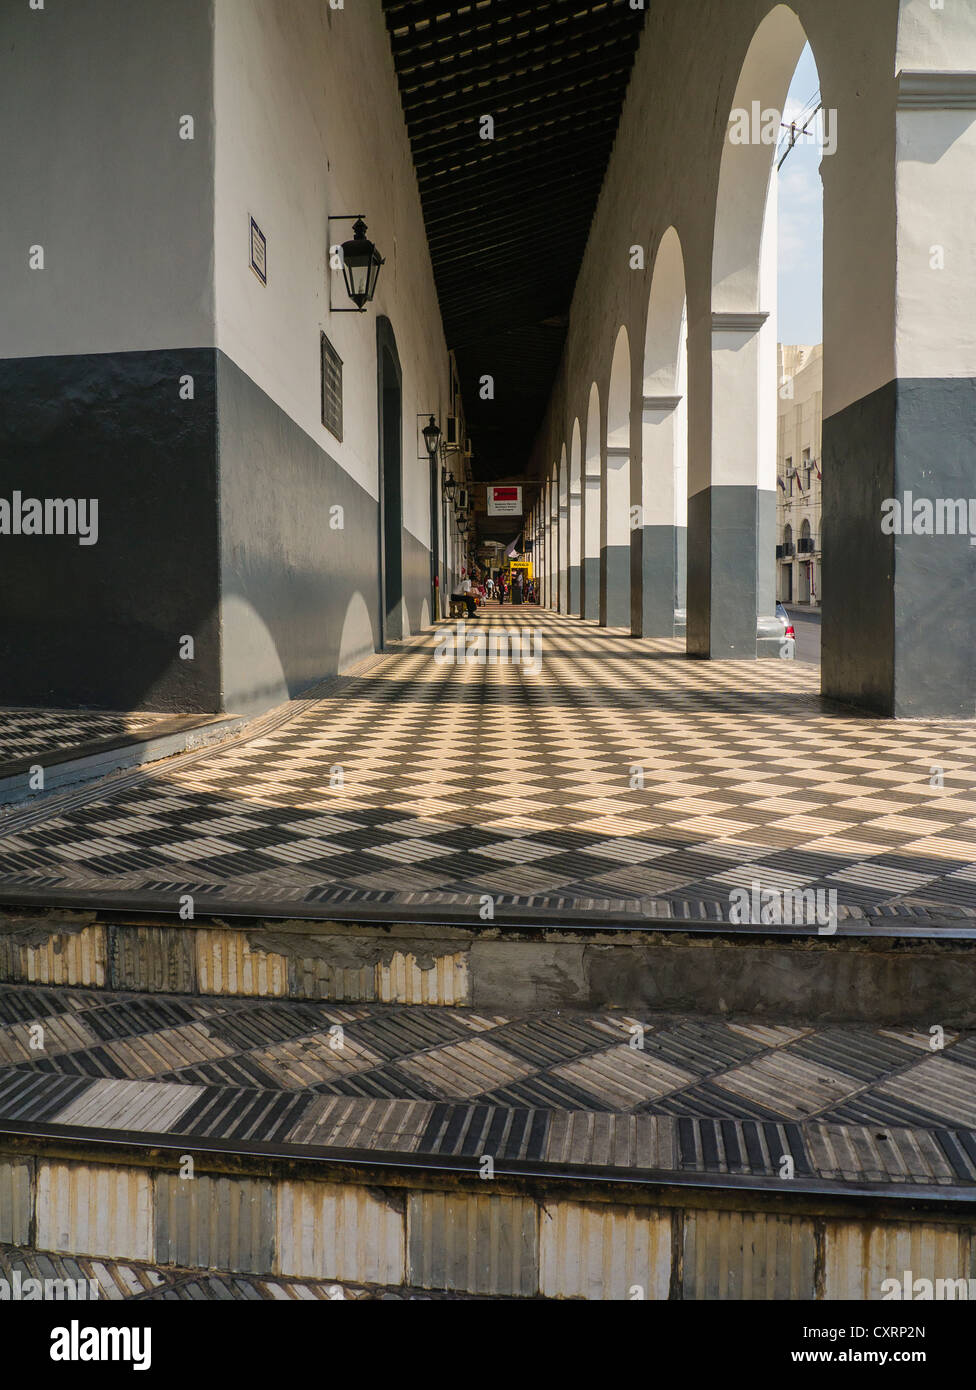 A one point perspective of diamond shaped floor tiles in a loggia a one point perspective of diamond shaped floor tiles in a loggia with white and gray archways in asuncin paraguay dailygadgetfo Choice Image